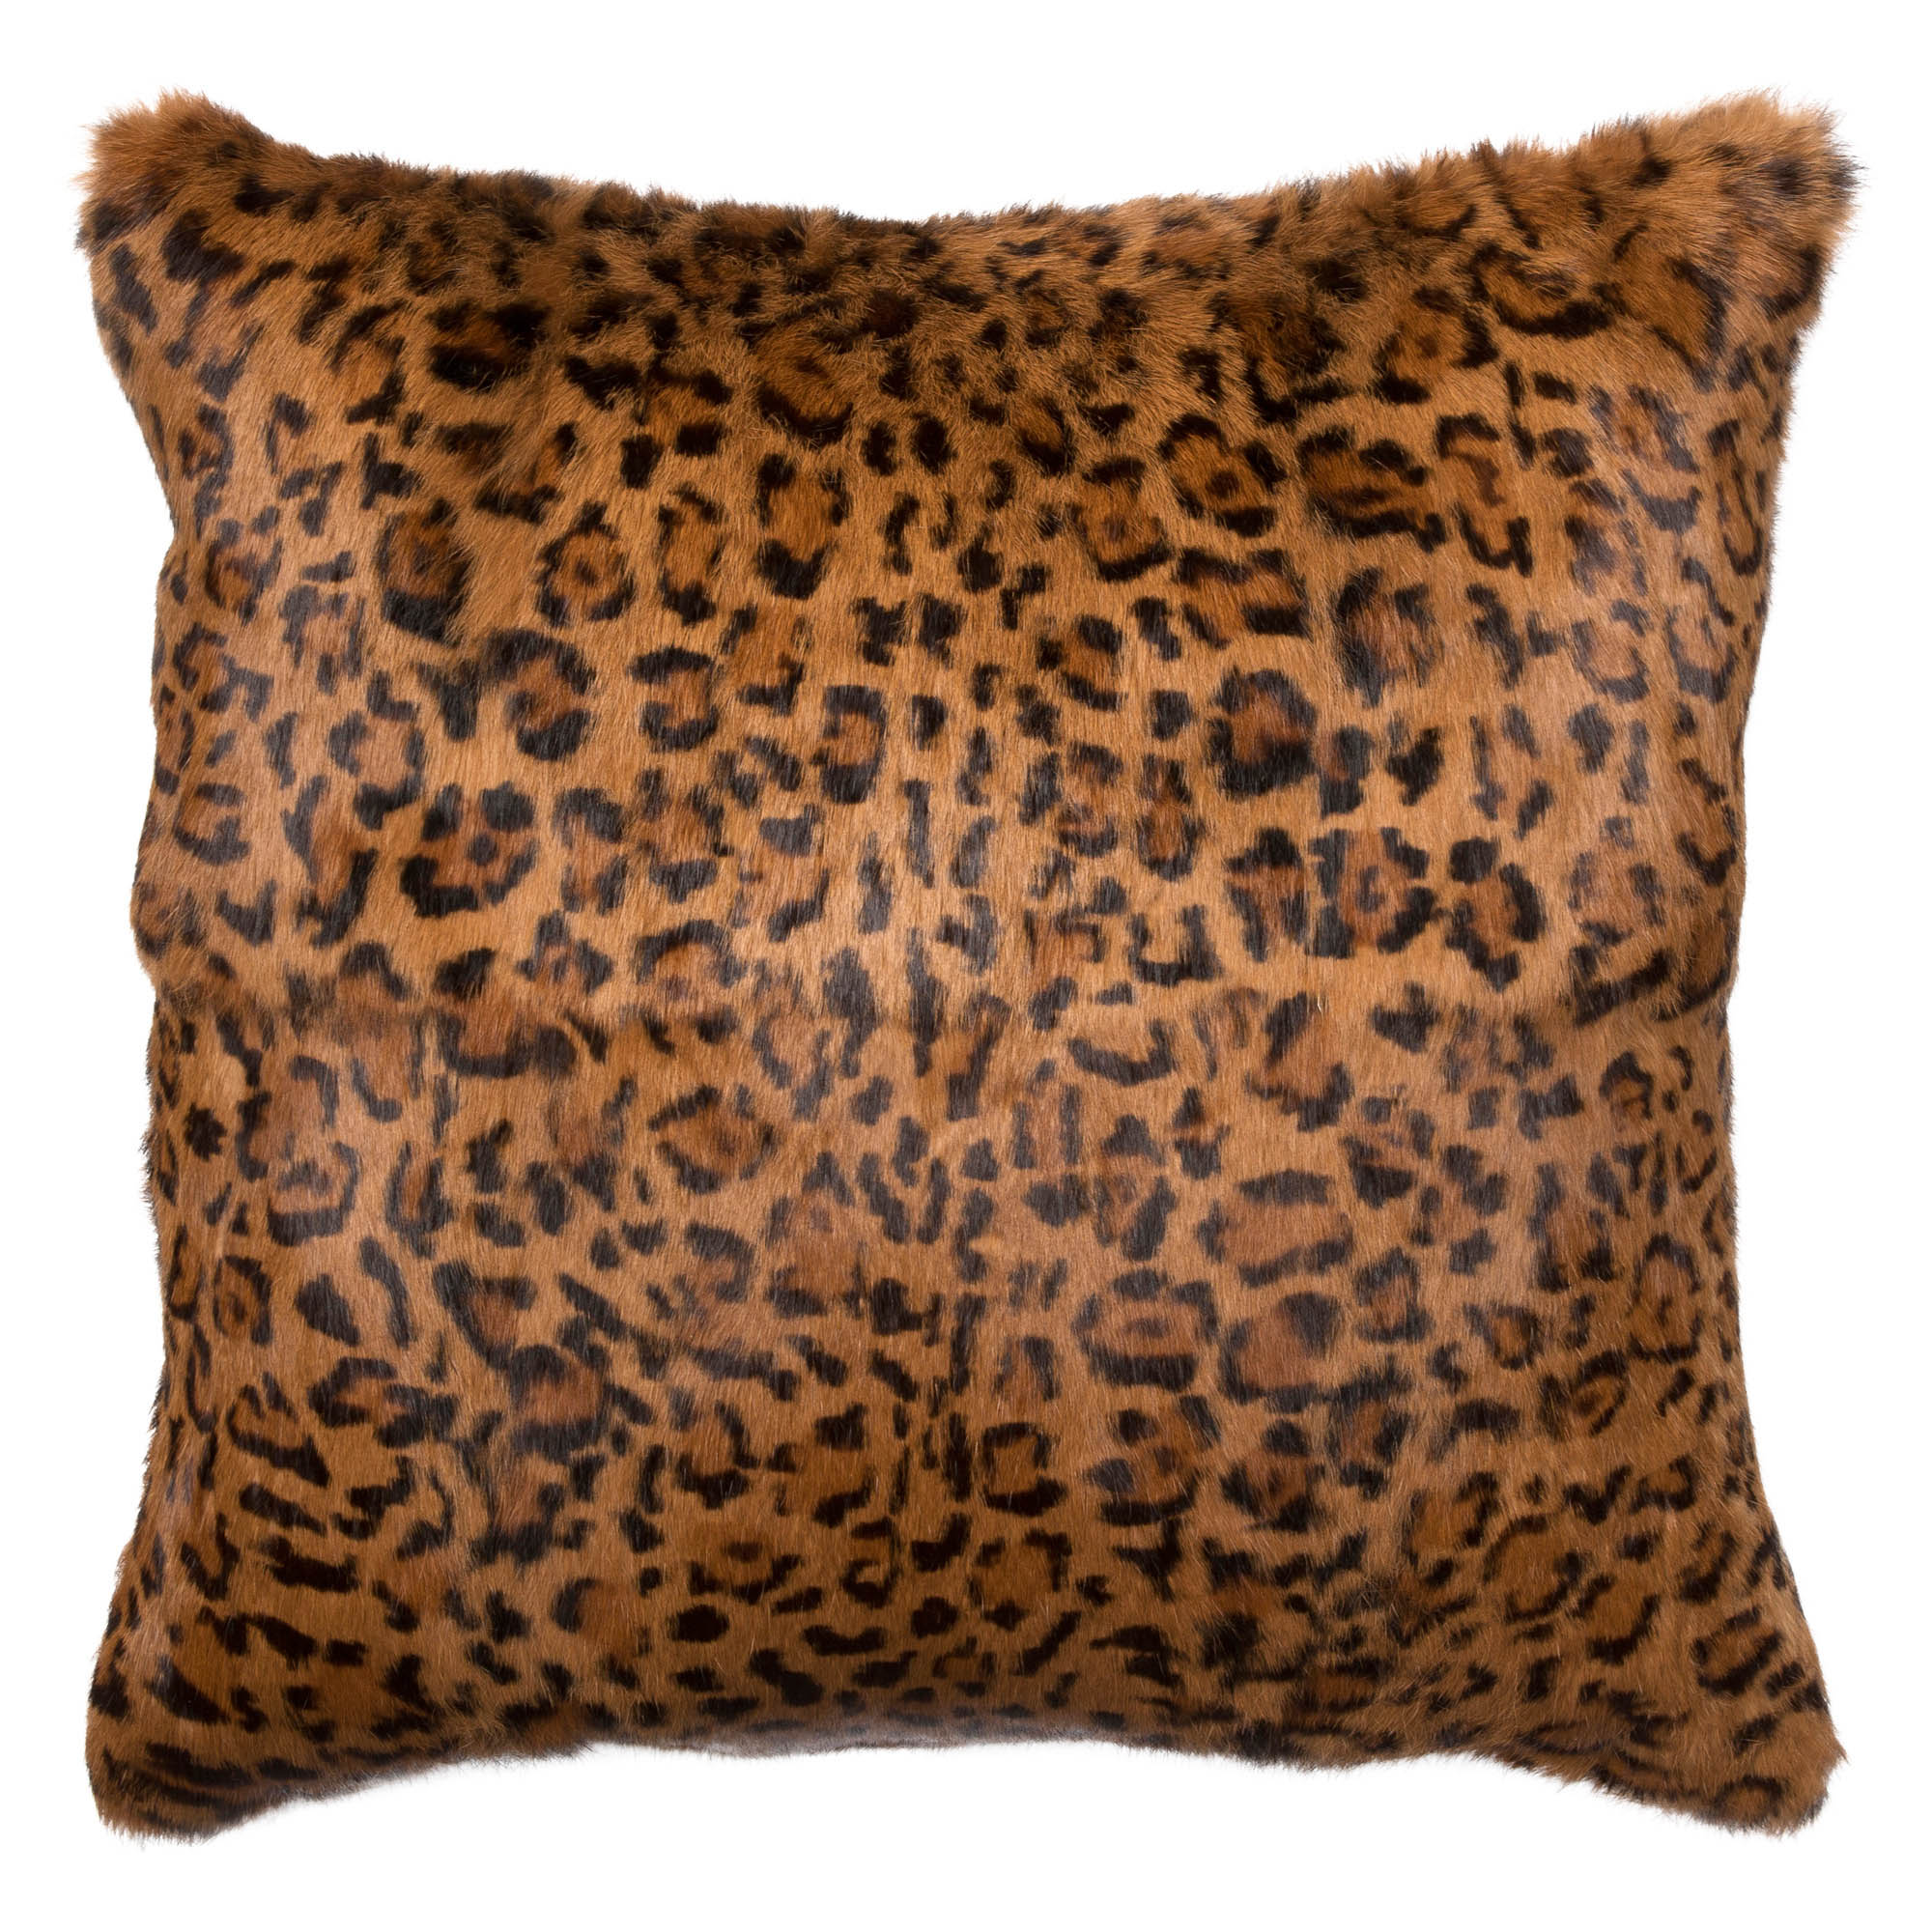 Shenzi Global Bazaar Leopard Print Decorative Pillow - 20x20